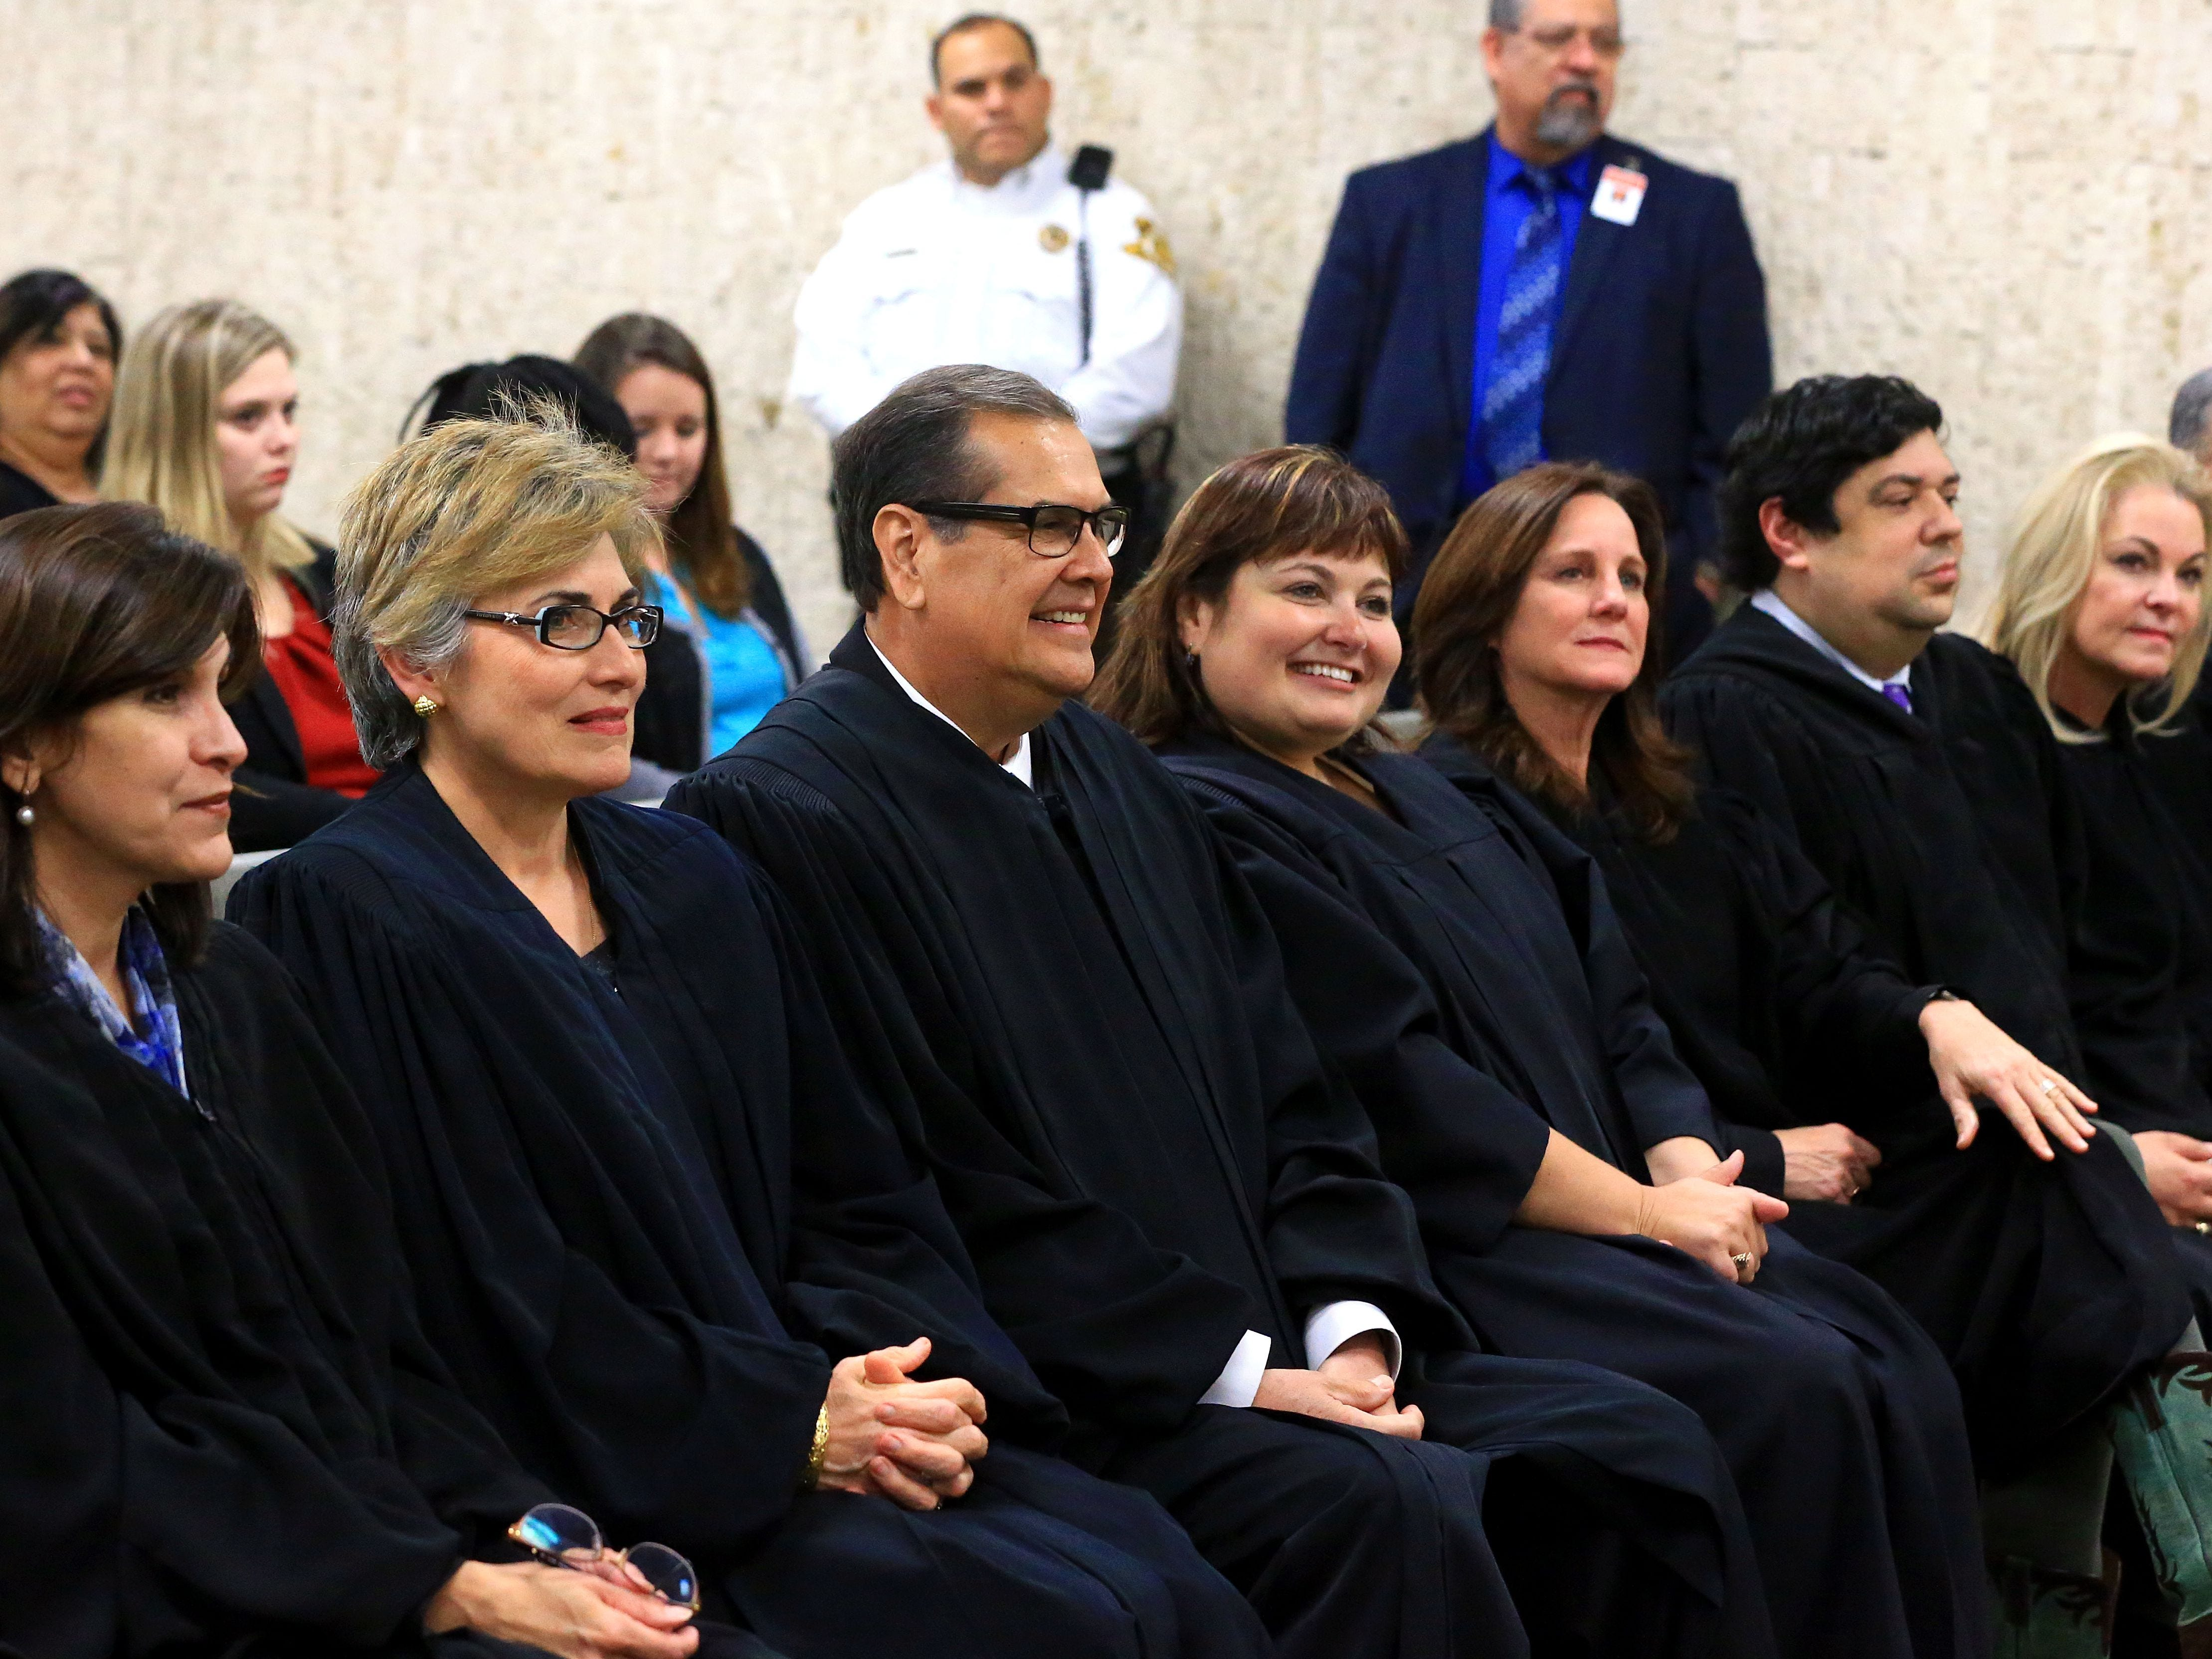 Nueces County judges watch as Nueces County District Attorney Mark Gonzalez talks before he is sworn in at the Nueces County Courthouse in 2017. There are more women judges than ever in Nueces County.